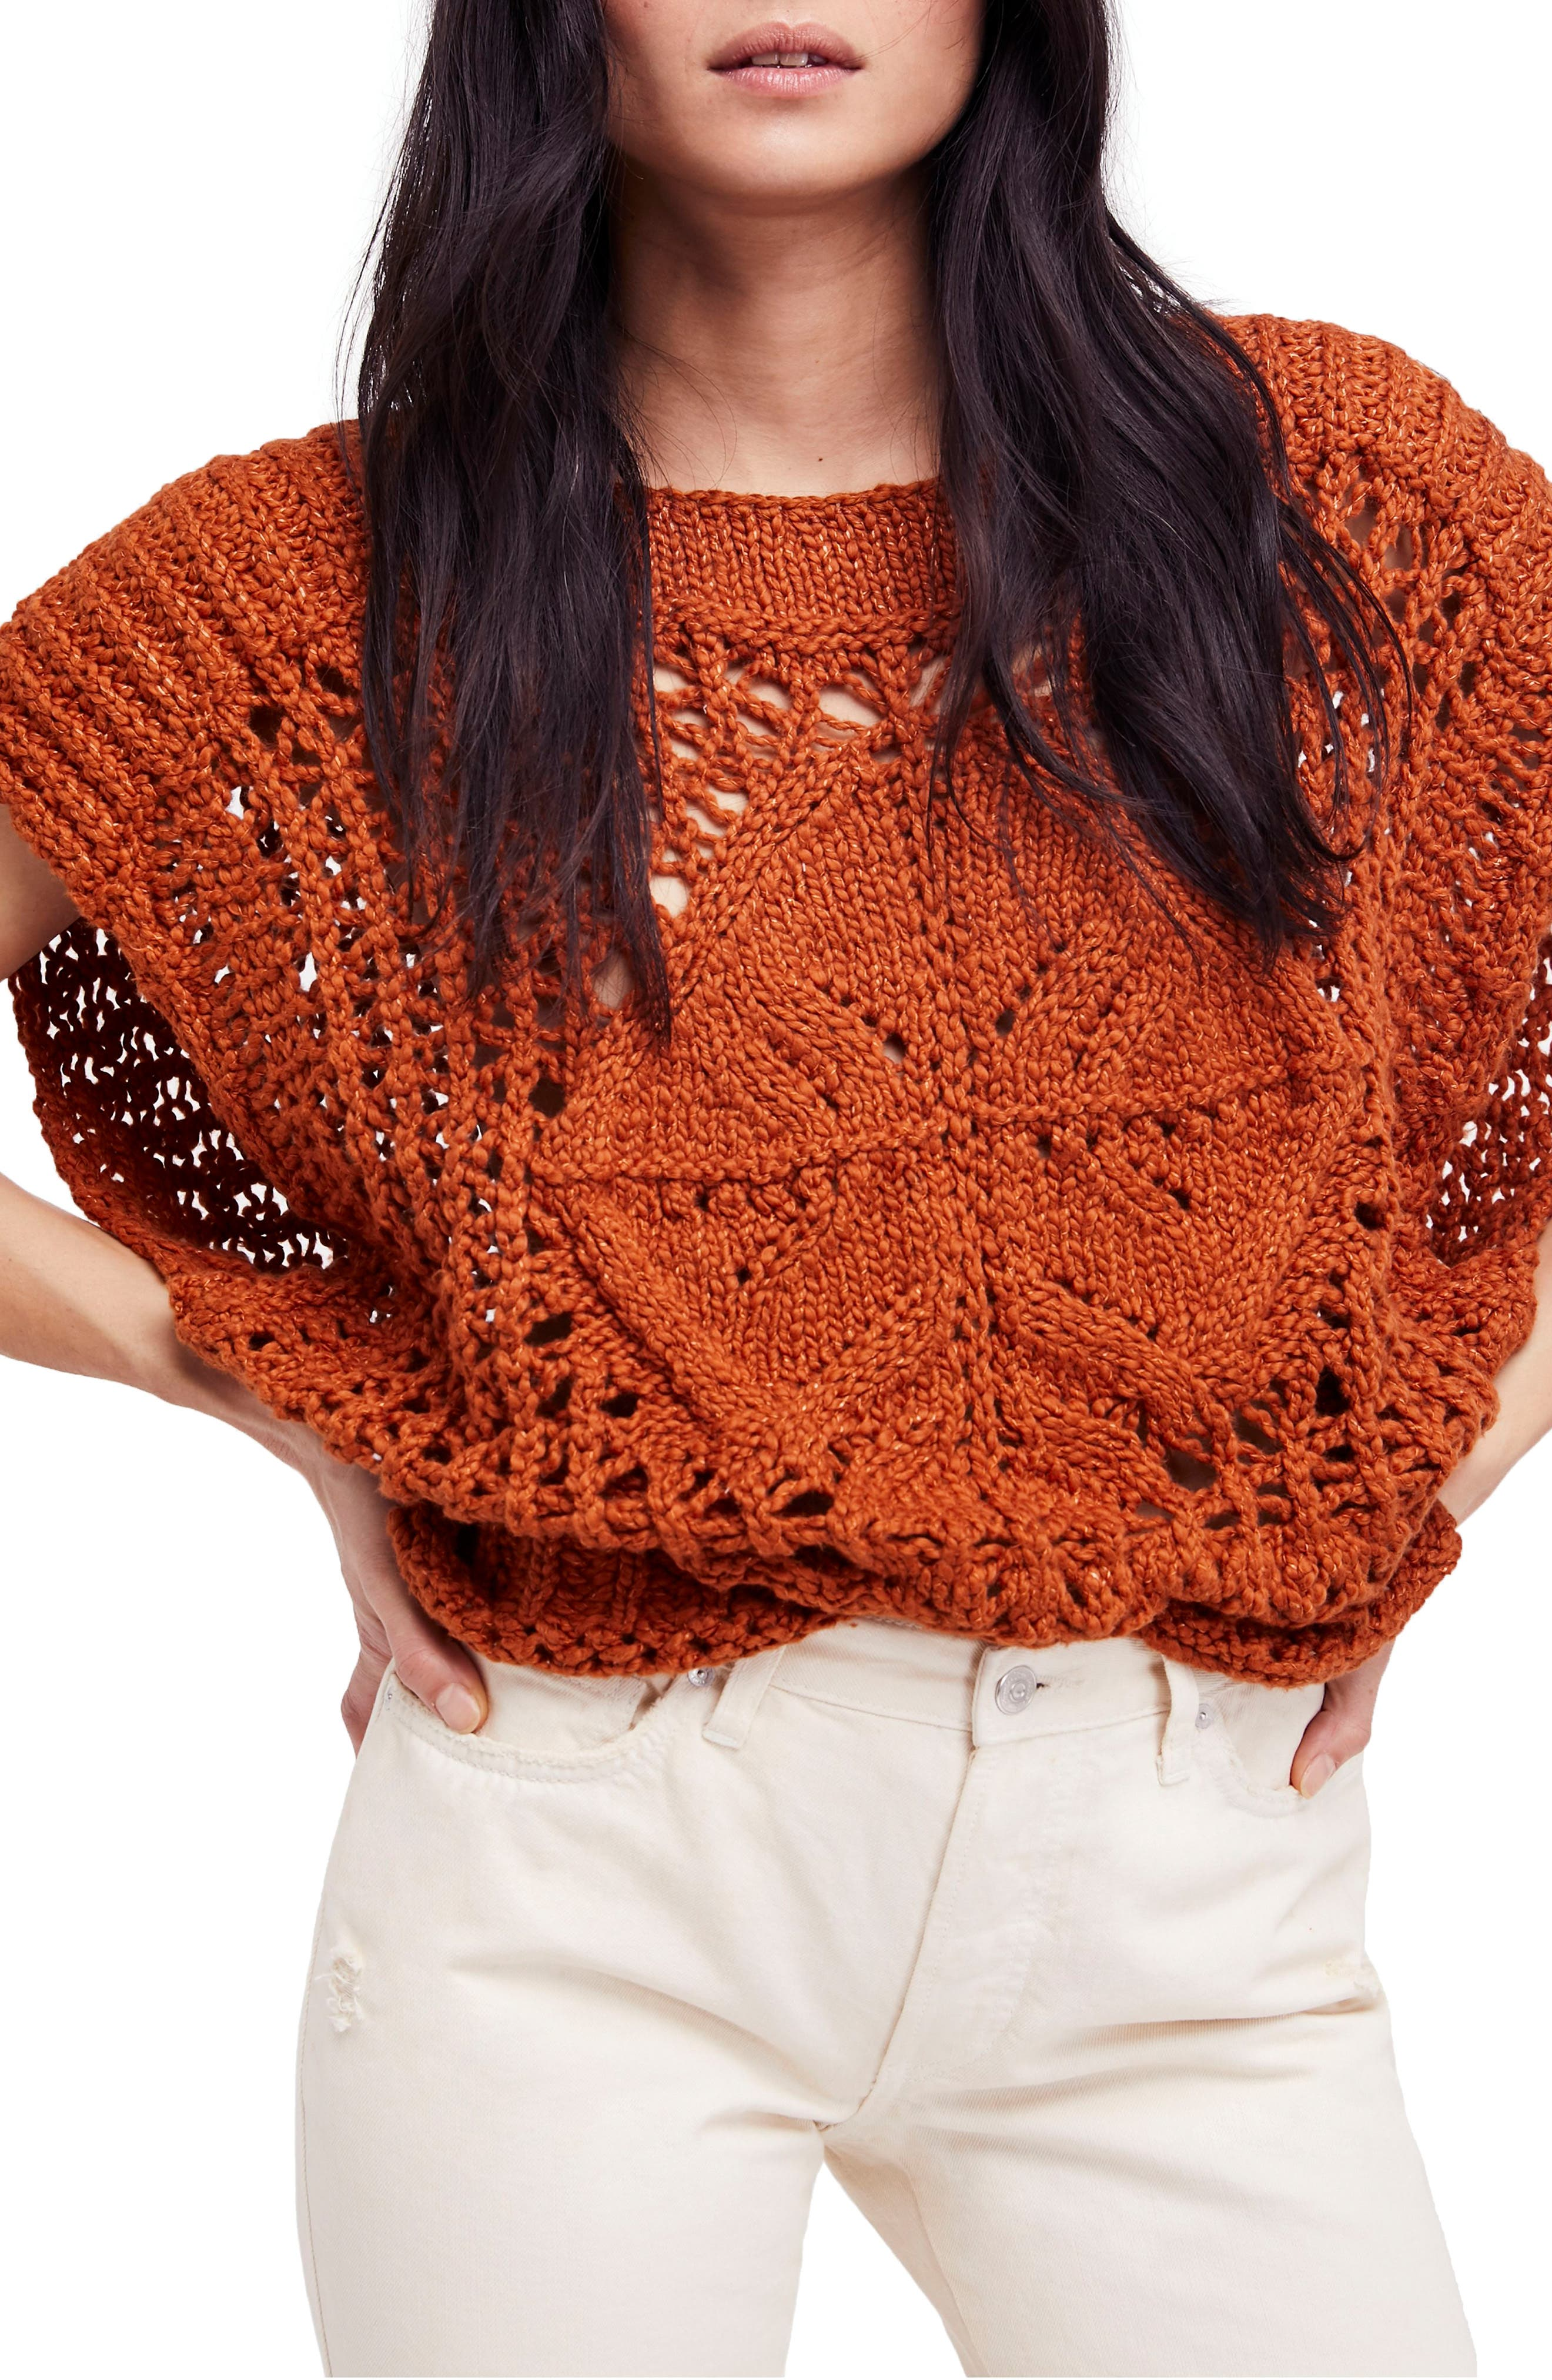 Diamond in the Rough Sweater,                         Main,                         color, 889